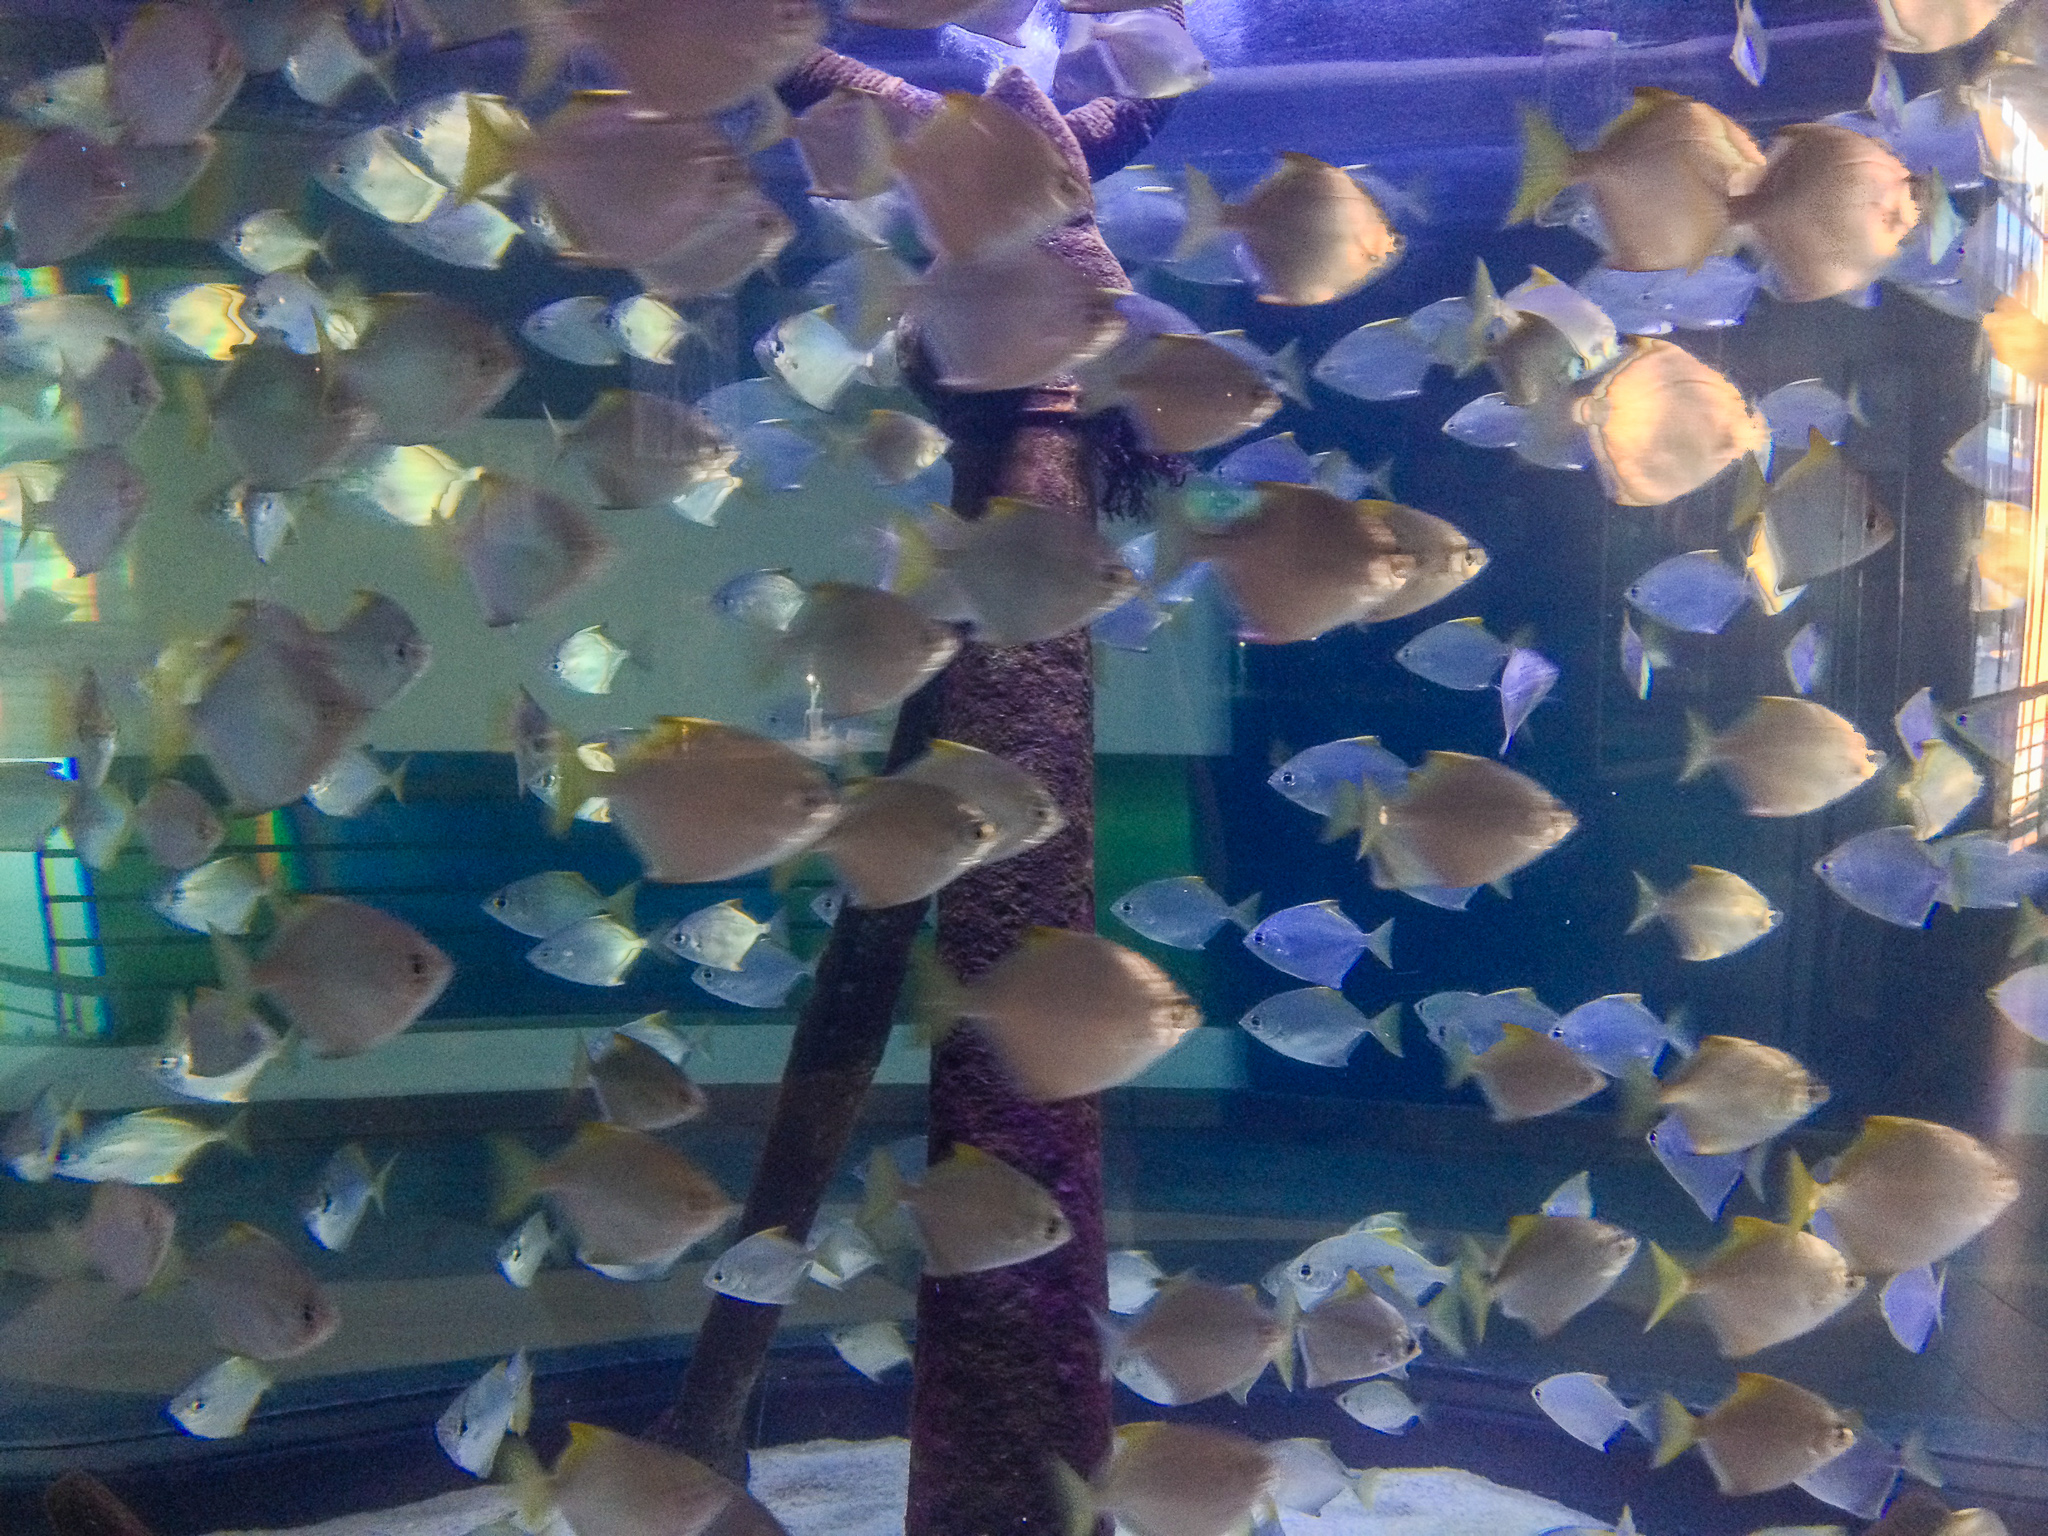 Two Oceans Aquarium - Cape Town